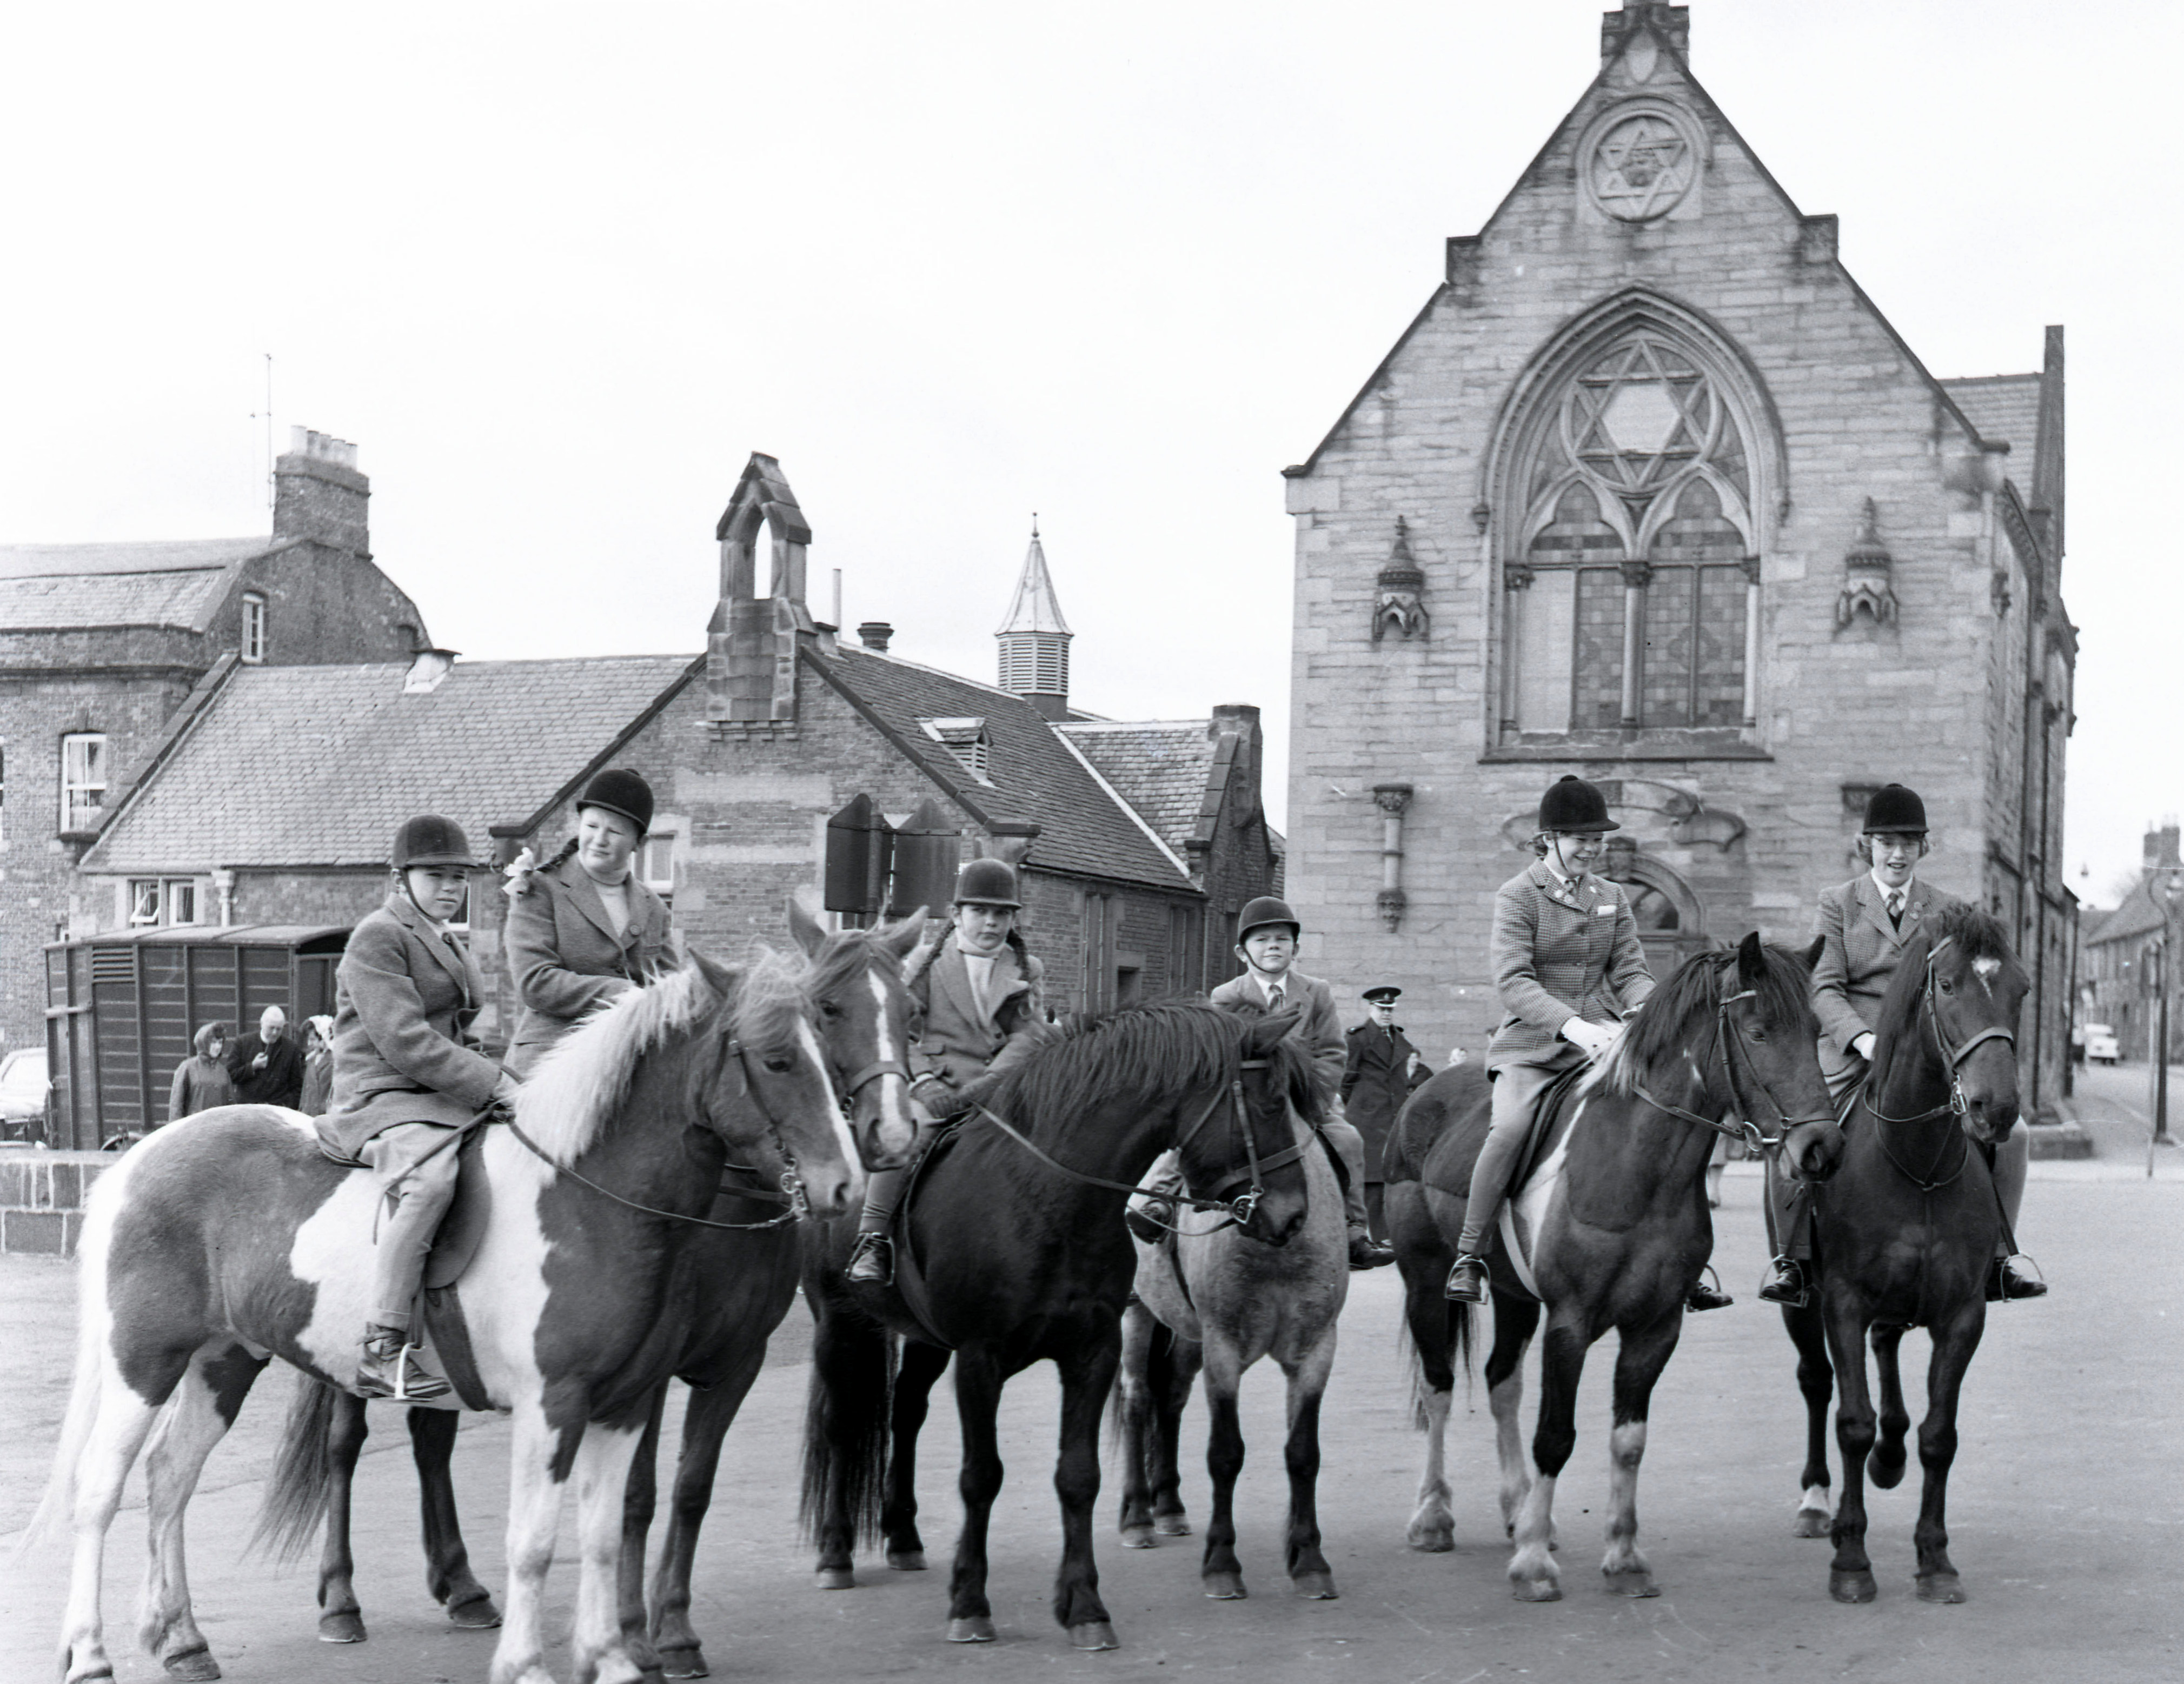 The Parade School can be seen back left in this 1950s photograph of the Riding of the Bounds in Berwick. Pictured also in the background on the right is the Freemasons' Hall. © Berwick Record Office, BRO 1944-1-4008-054.